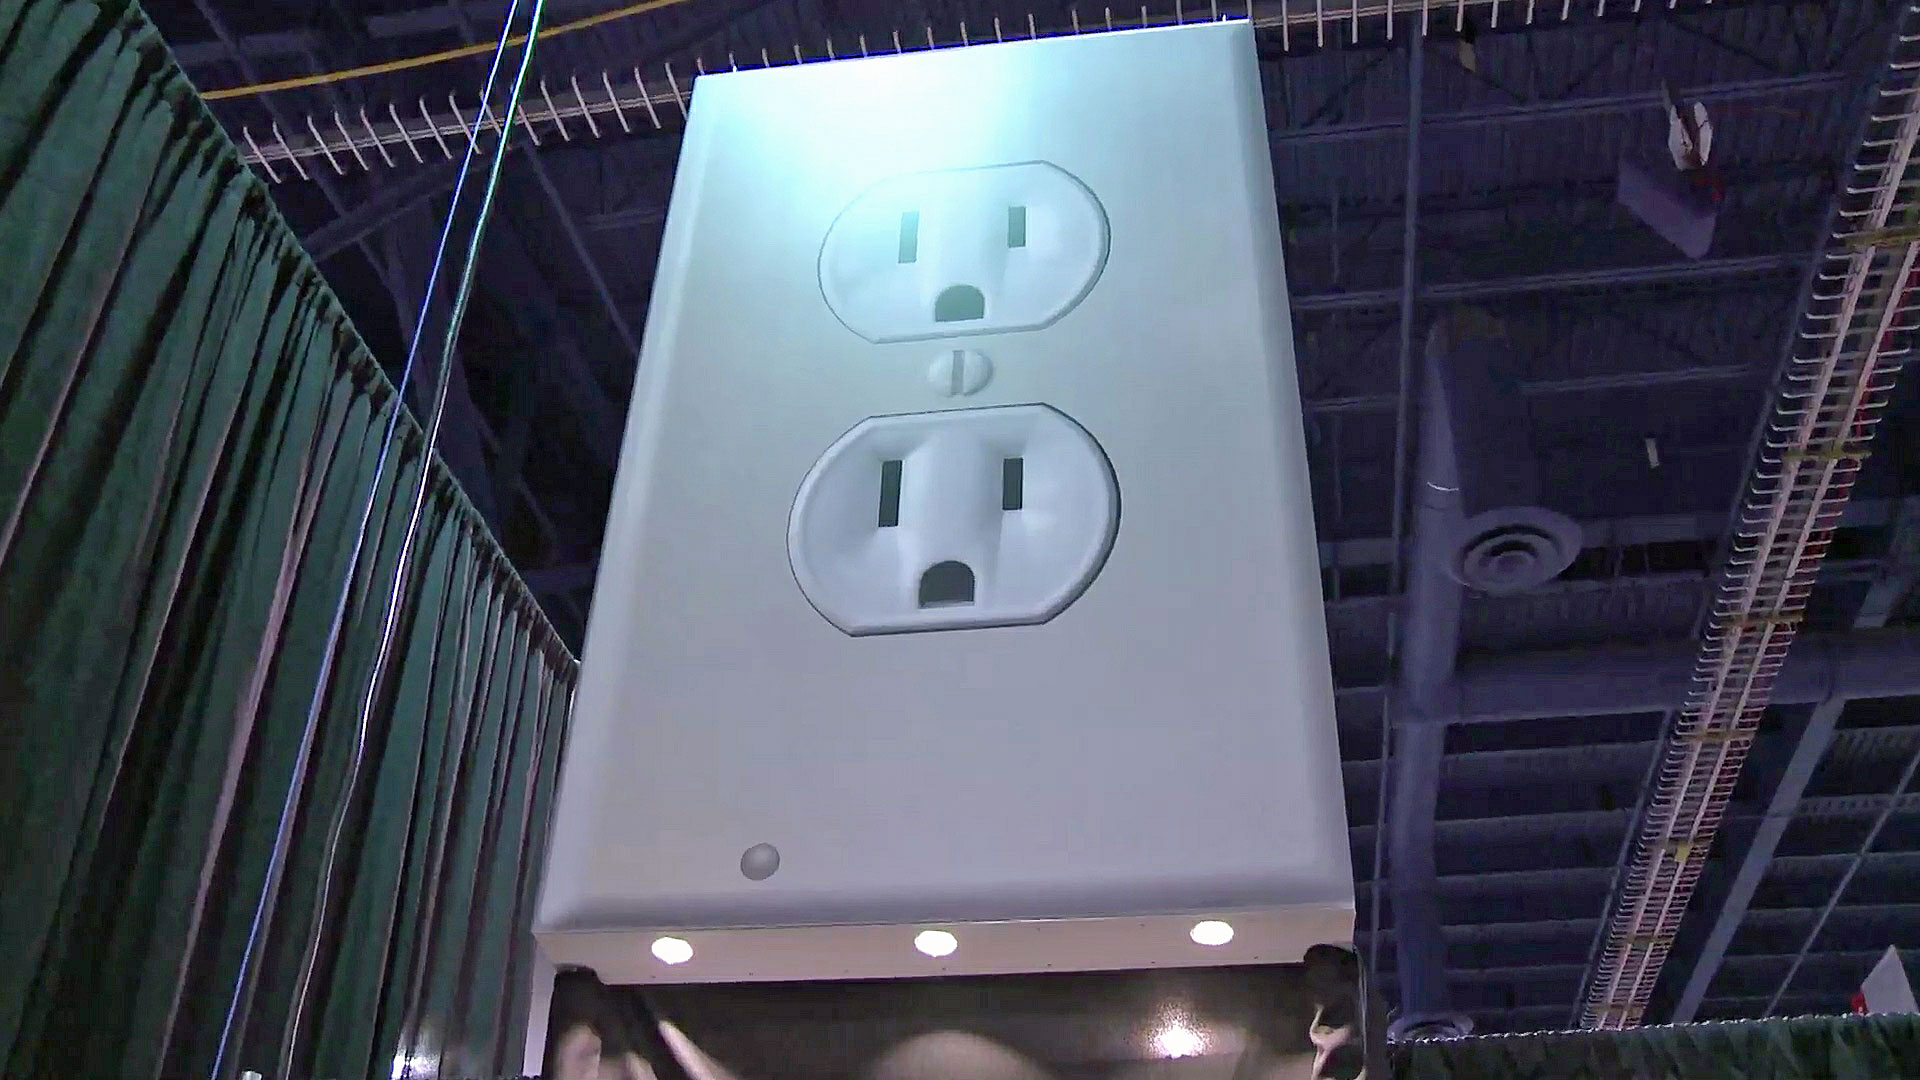 Ingenious Led Guide Light Built Into Outlet Snaps On No